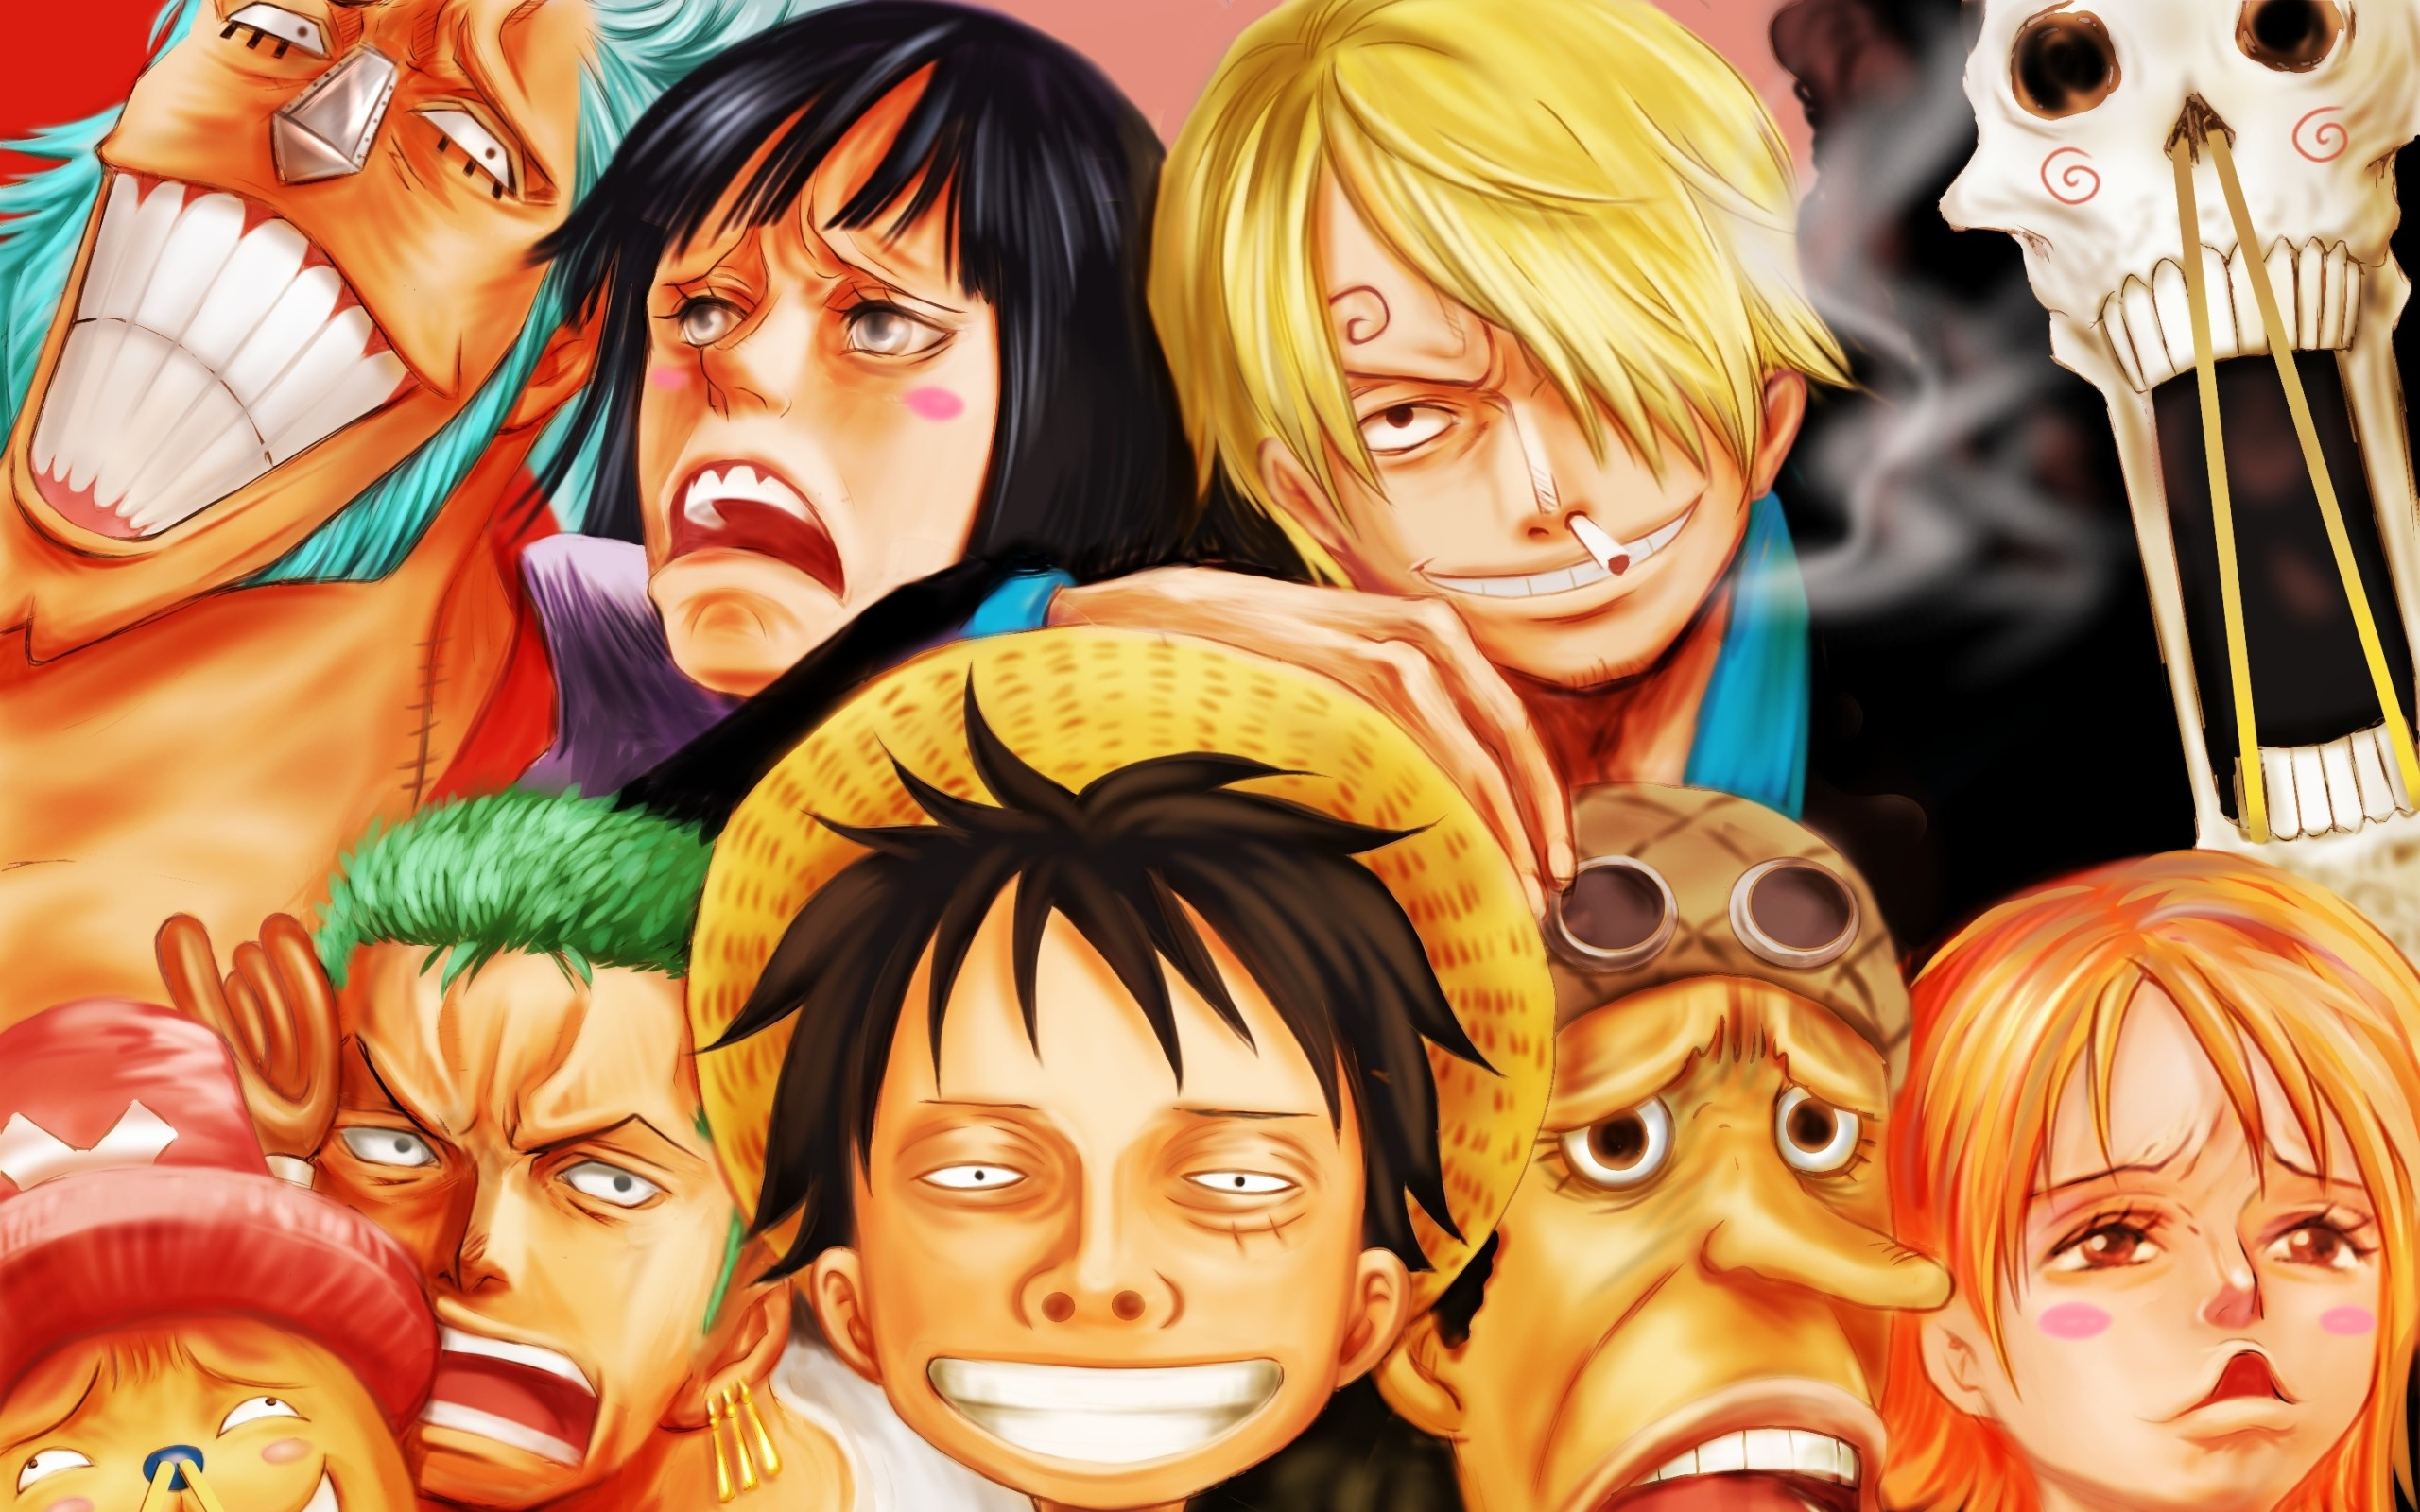 Res: 2560x1600, Wallpaper of Brook, Franky, Monkey D. Luffy, Nami, Nico Robin background &  HD image